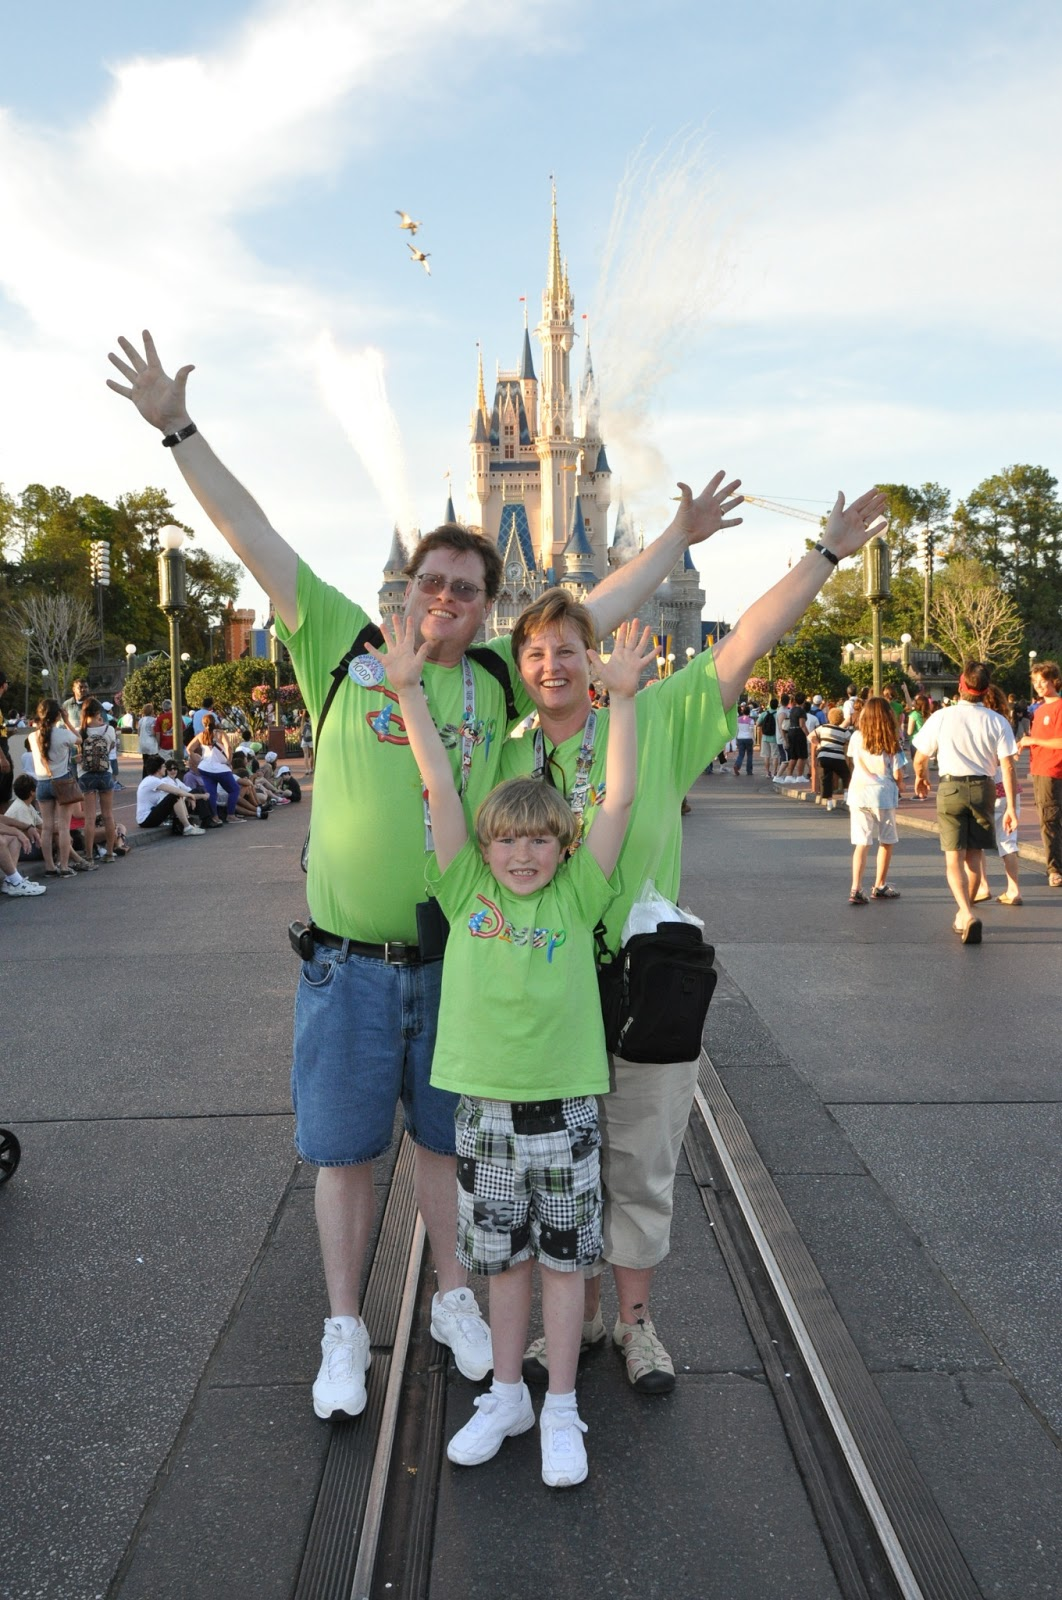 Buy Disney World Tickets from Orlando's top selling discount ticket store. DW Tickets is an authorized Disney World ticket agency, and we are proud of our established reputation.